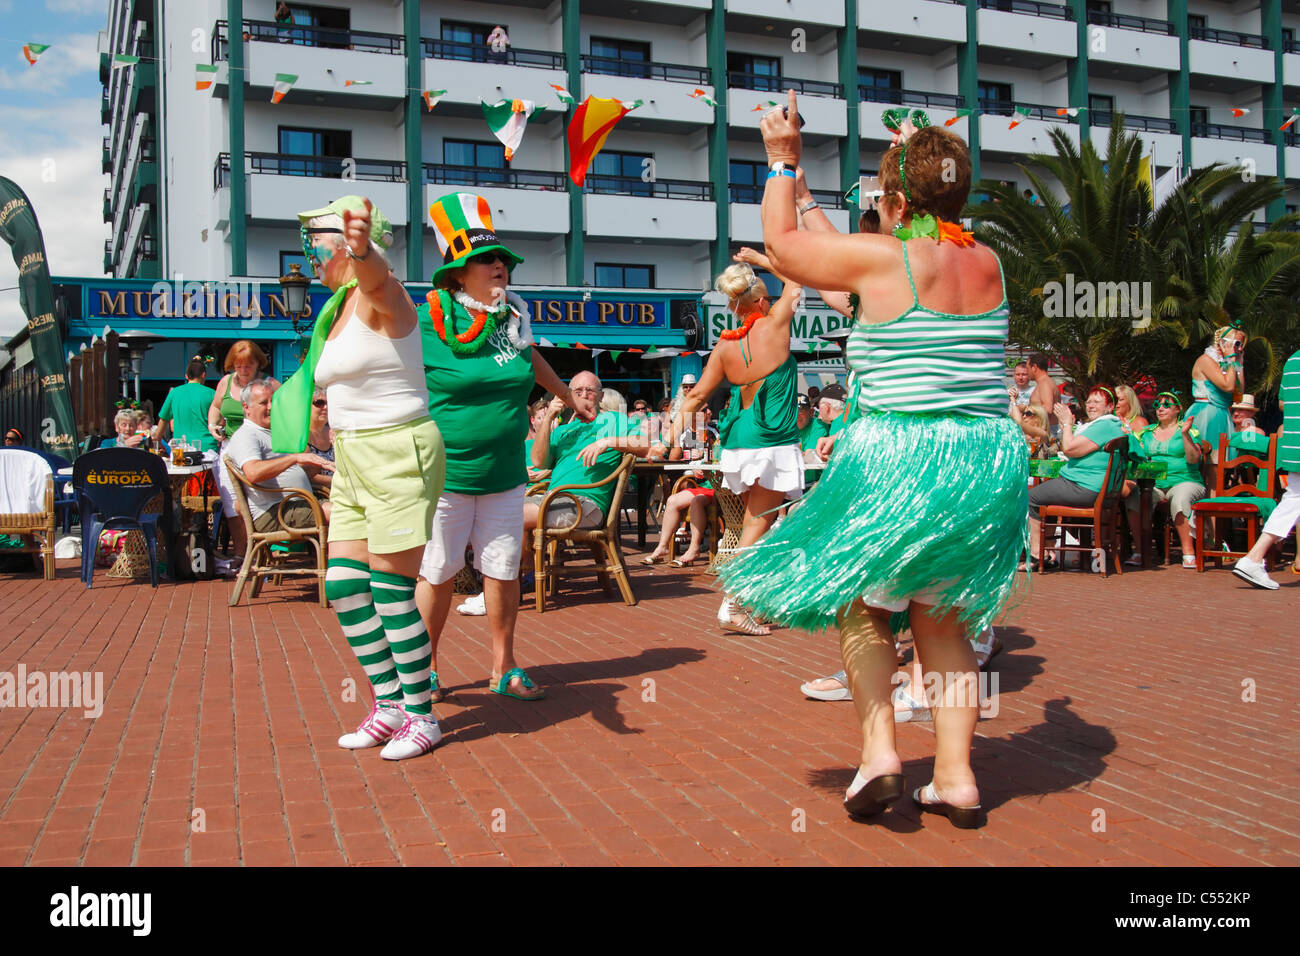 Irish holidaymakers Celebrating St Patrick's day outside Irish pub on Gran Canaria in the Canary Islands - Stock Image